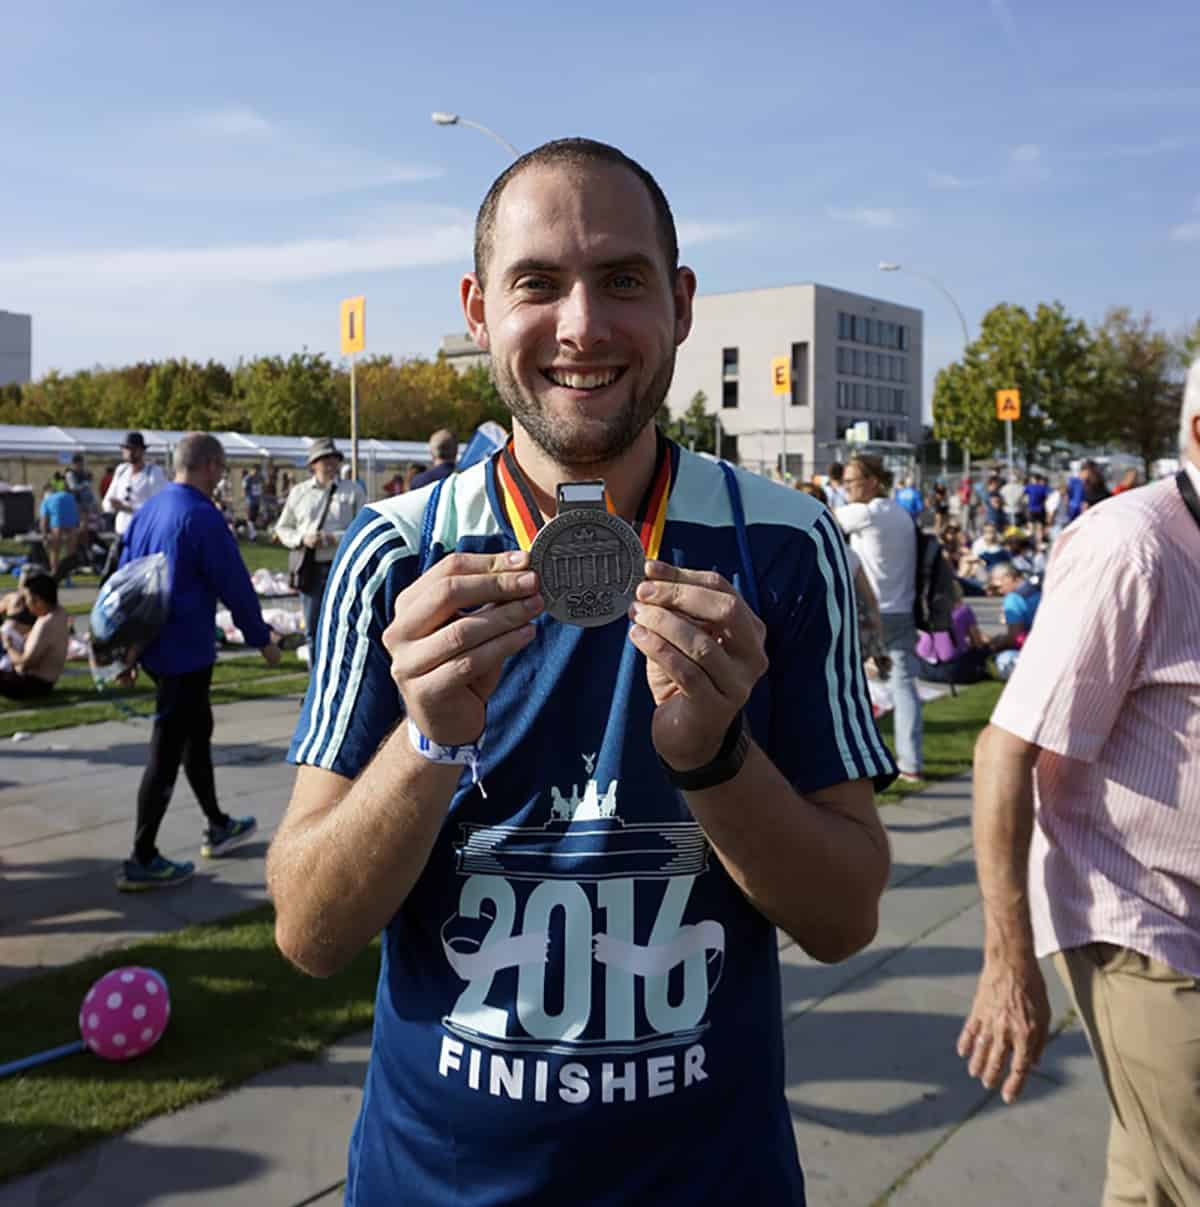 berlin-marathon-finisher